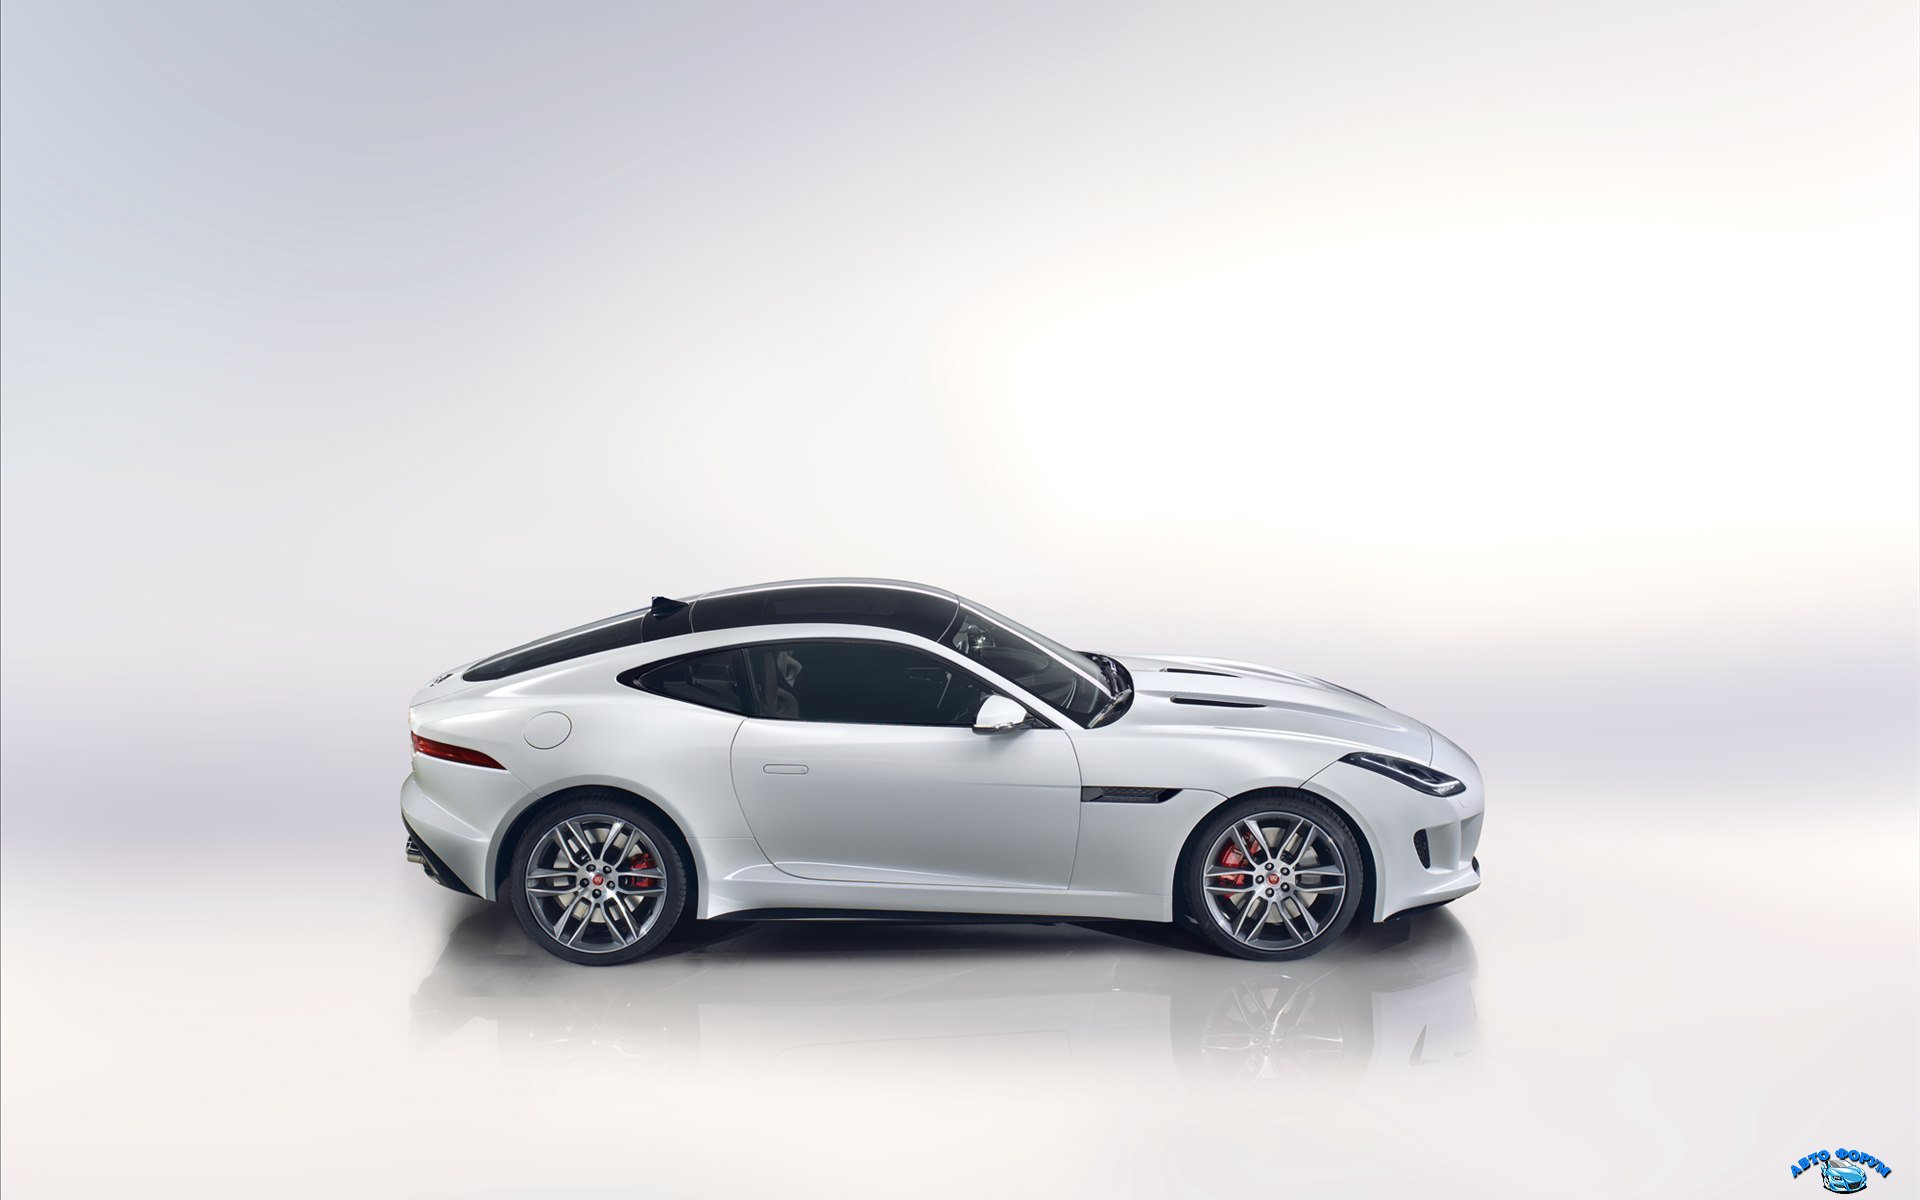 Jaguar-F-Type-R-Coupe-2015-widescreen-20.jpg